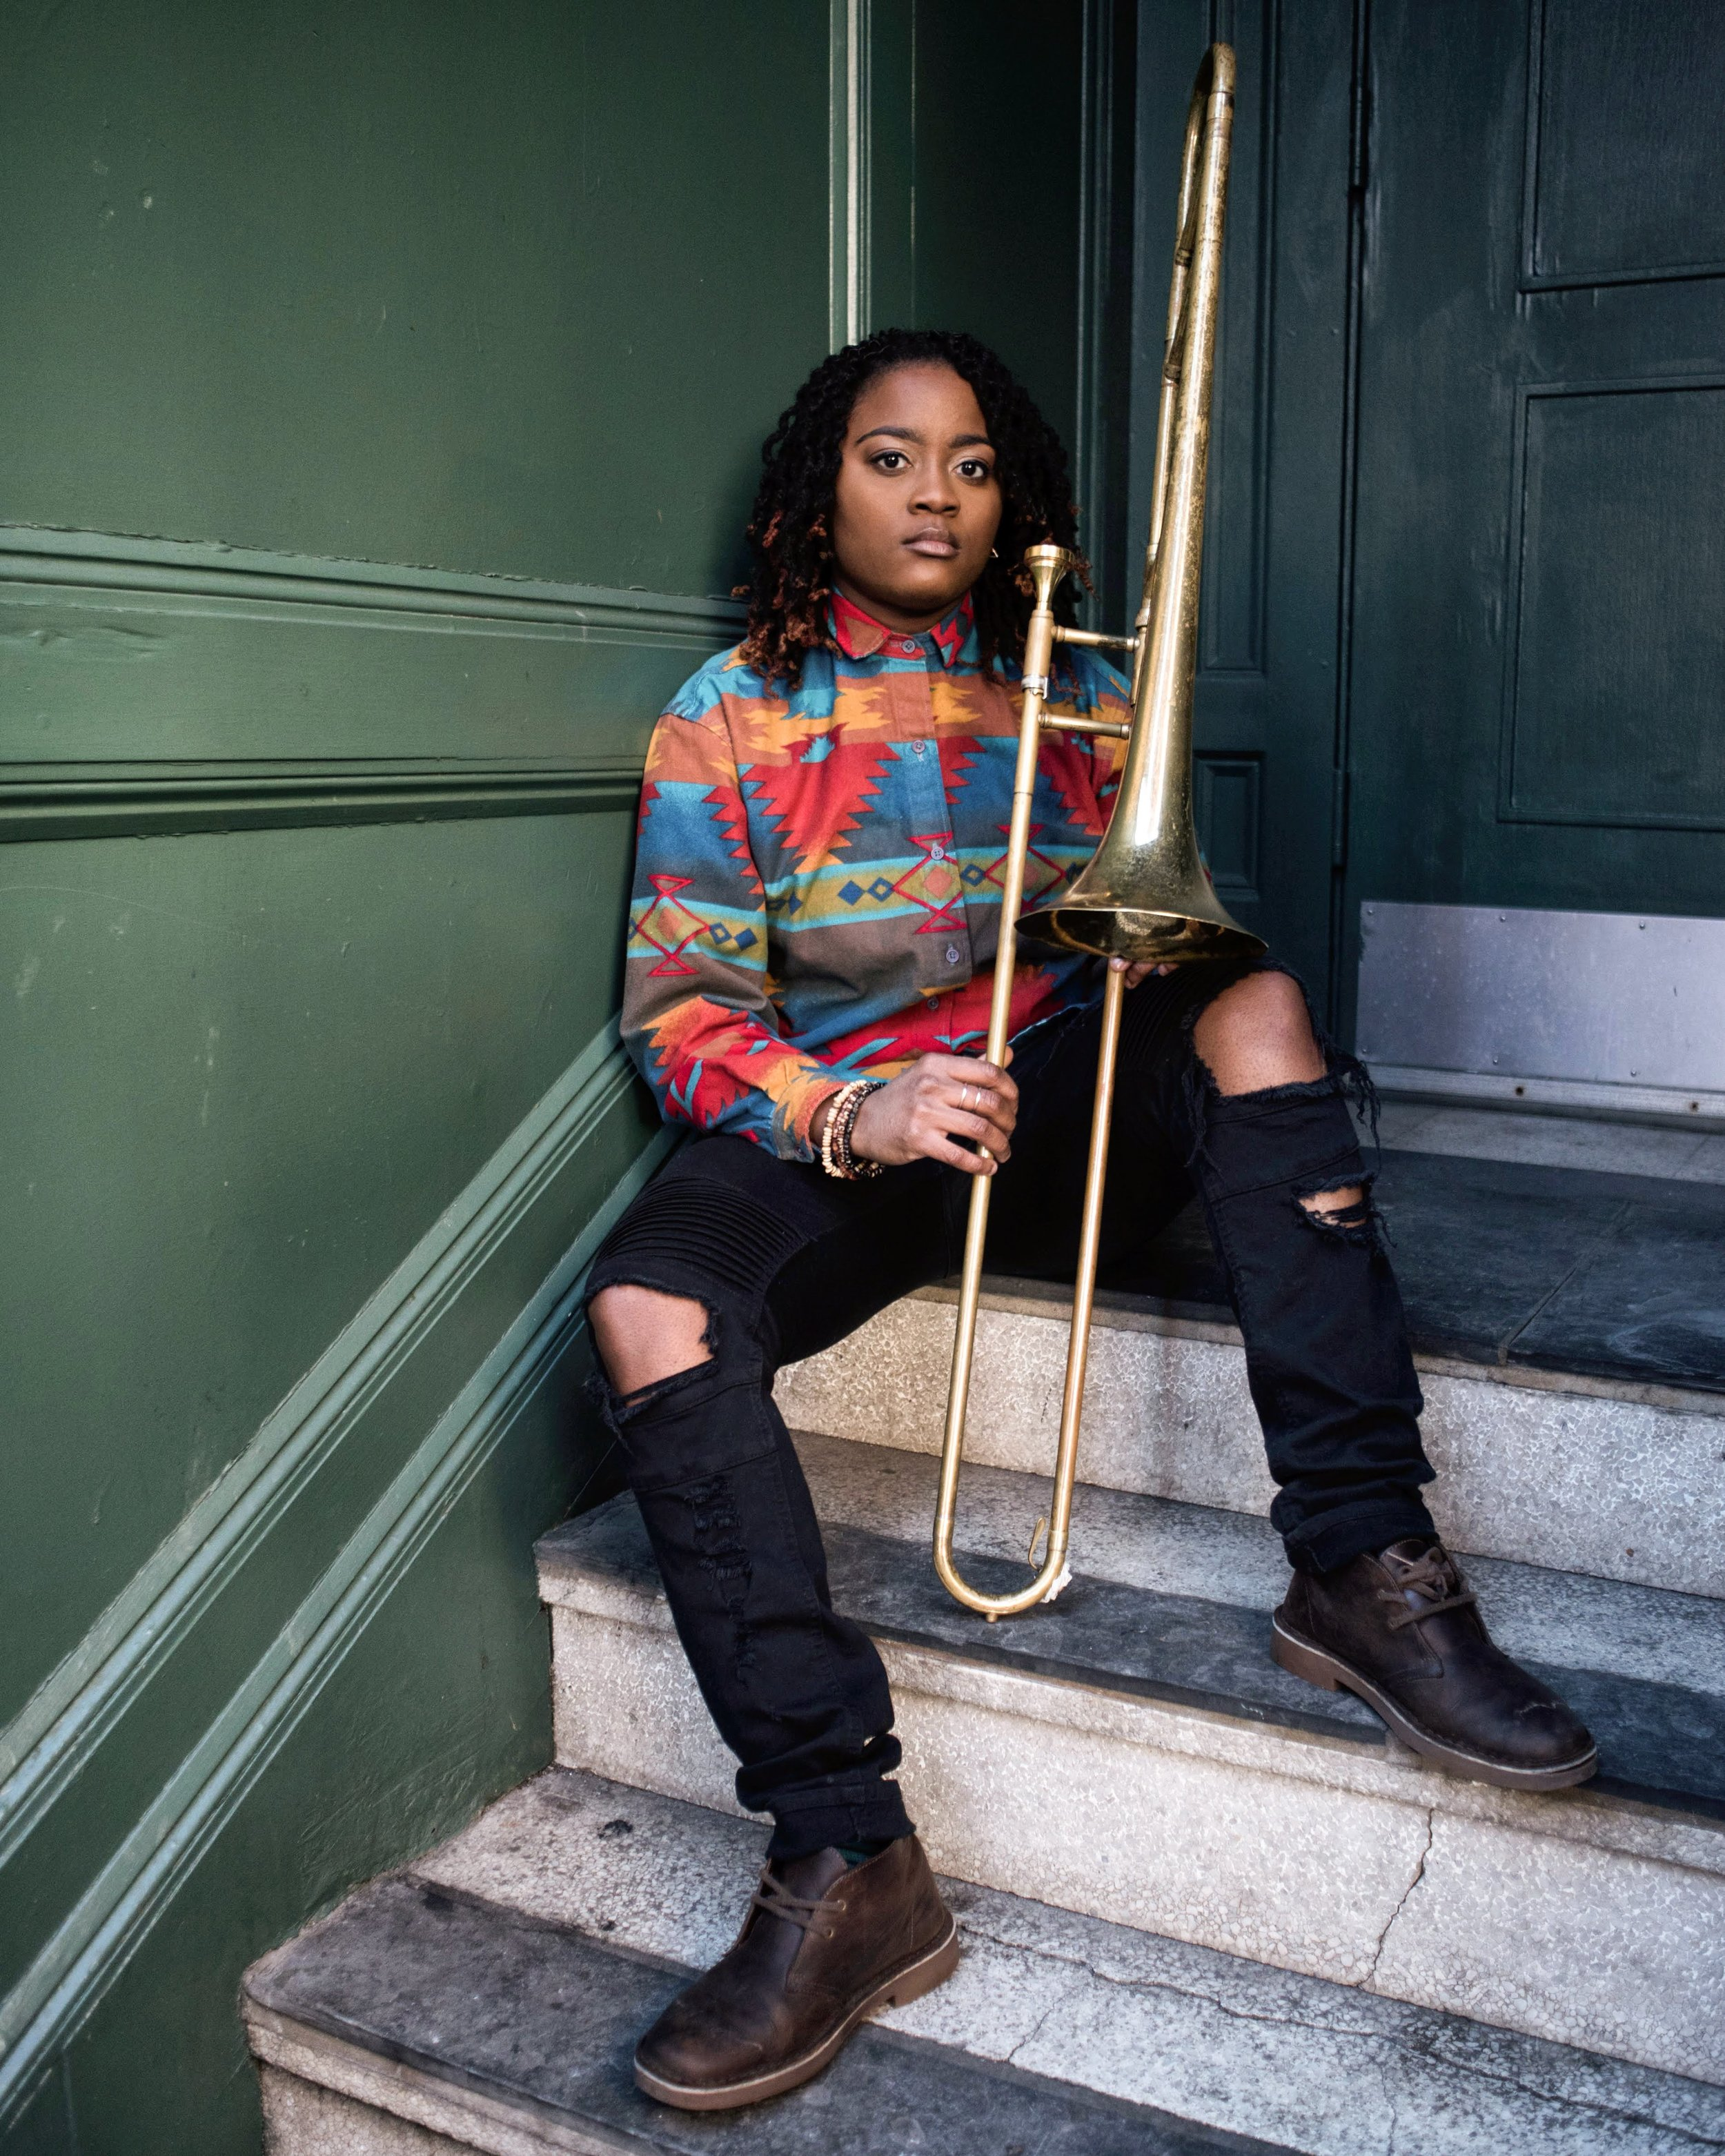 Myrish  - A native of Richmond, VA, Myrish Spell is the first musician in her family. She began playing music at a young age, transitioning to trombone in high school. Myrish received a full-tuition scholarship to Berklee College of Music, graduating in 2014 with a Bachelors of Music in Music Business/Management and a focus in Entrepreneurship. She currently plays in a funk band called Other than Boston. In addition to performing, she is a songwriter and music educator. She released her first EP, Teachings via SoundCloud in 2016. With the completion of Full Sail Entertainment Business Masters program in the next year, Myrish hopes to combine her passion for performance and education into a venture that allows artists and students to collaborate and share their experiences with one another.